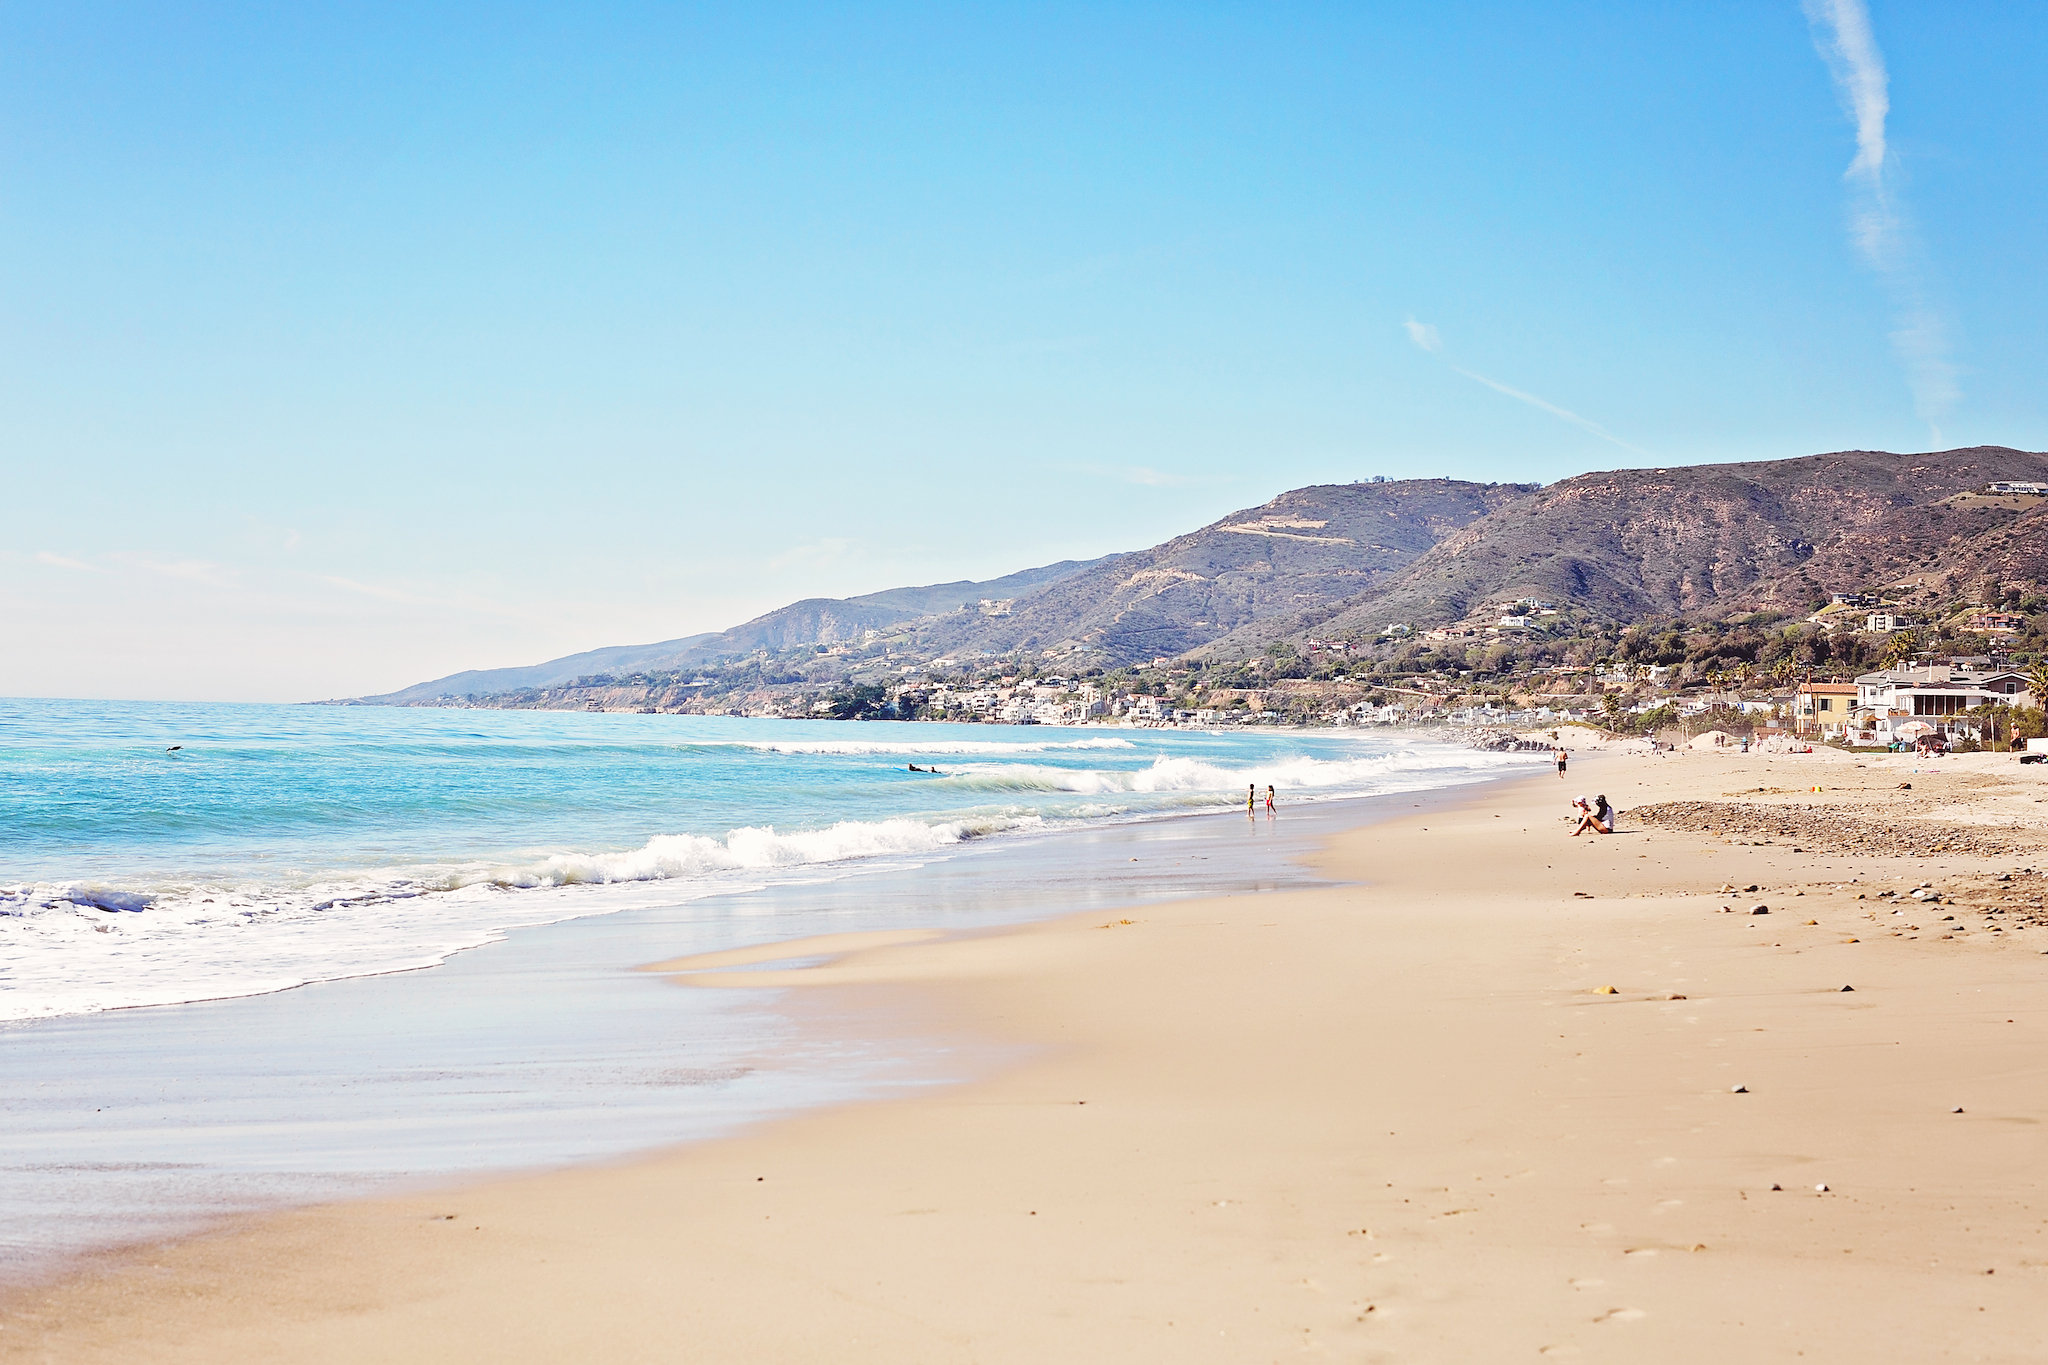 California dreamin' and perfect beaches to stop at during your road trip! #California #USA #CA